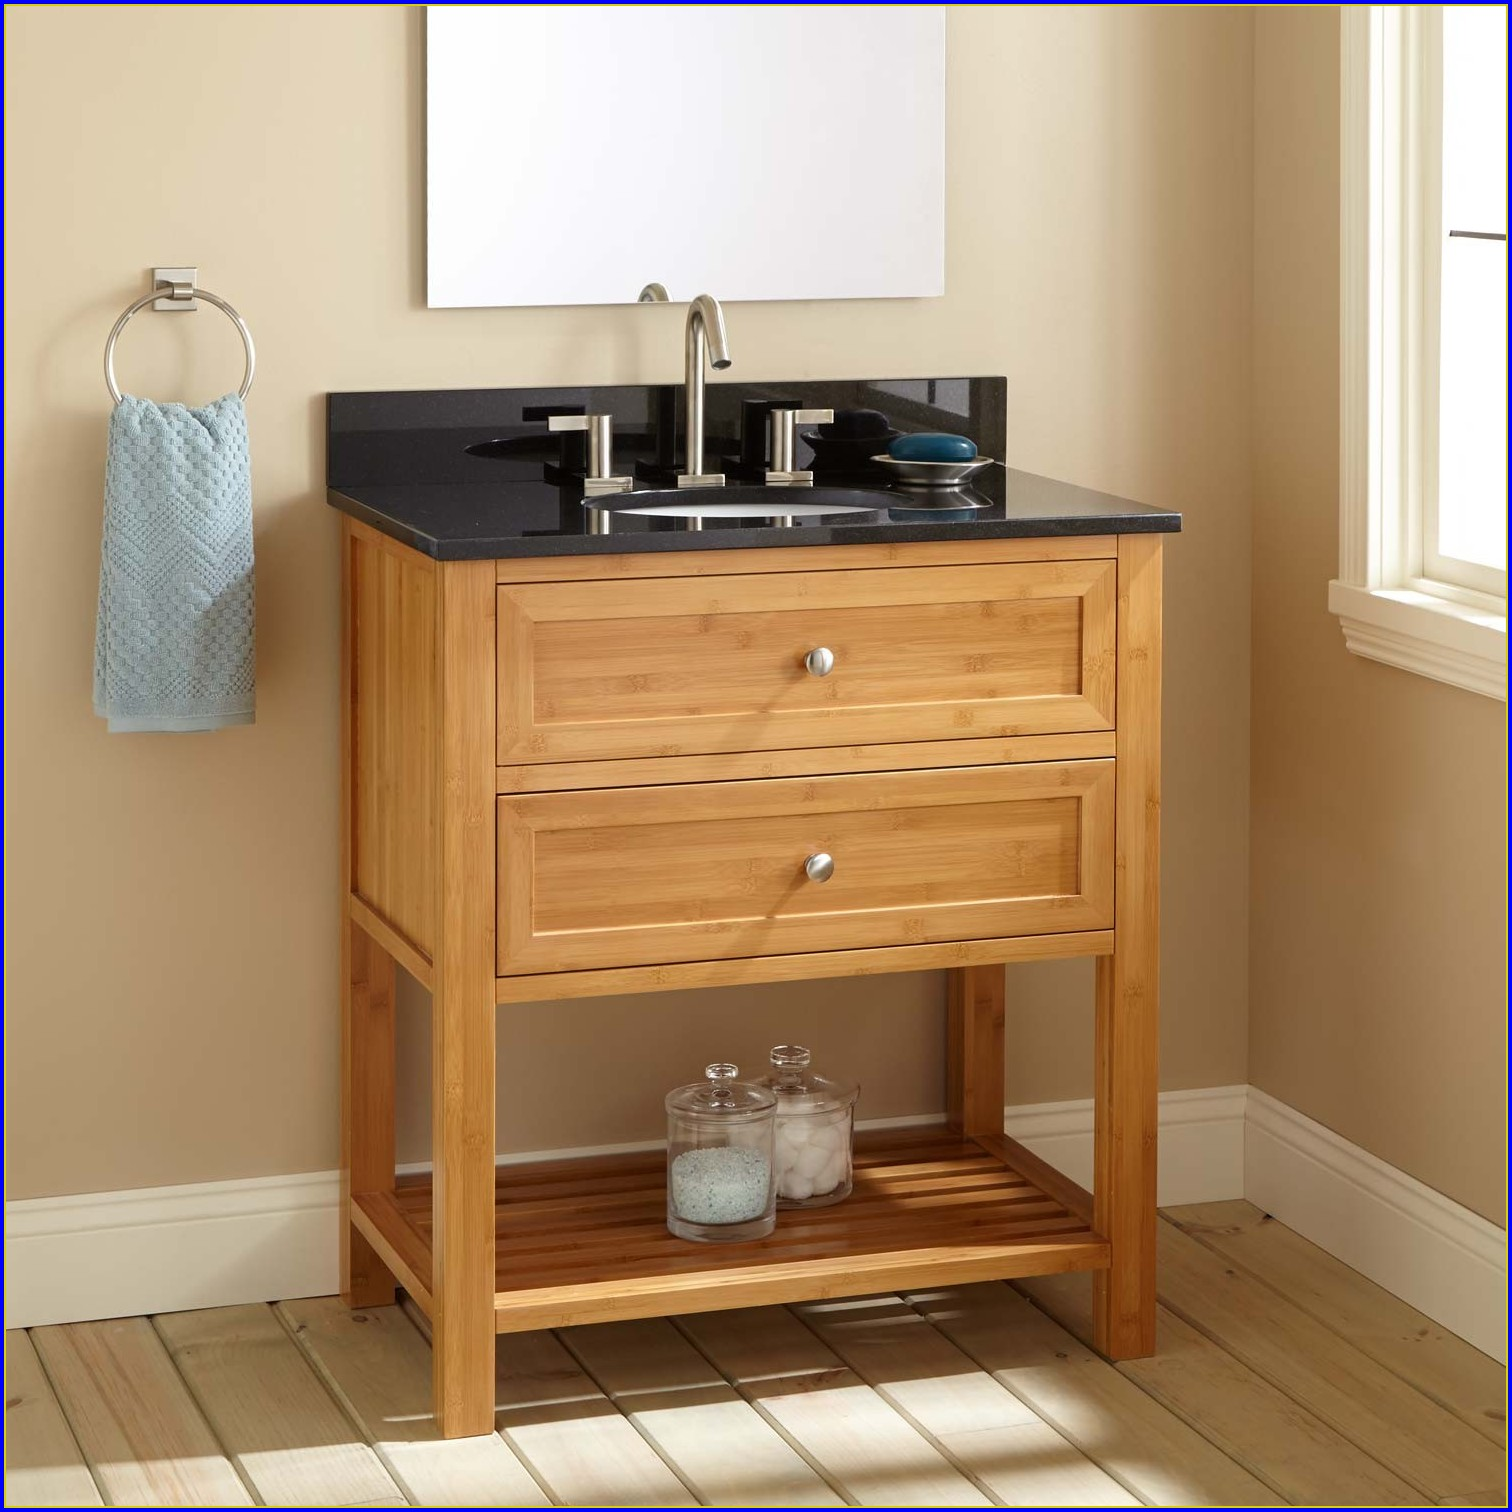 Shallow Depth Bathroom Sink Vanity